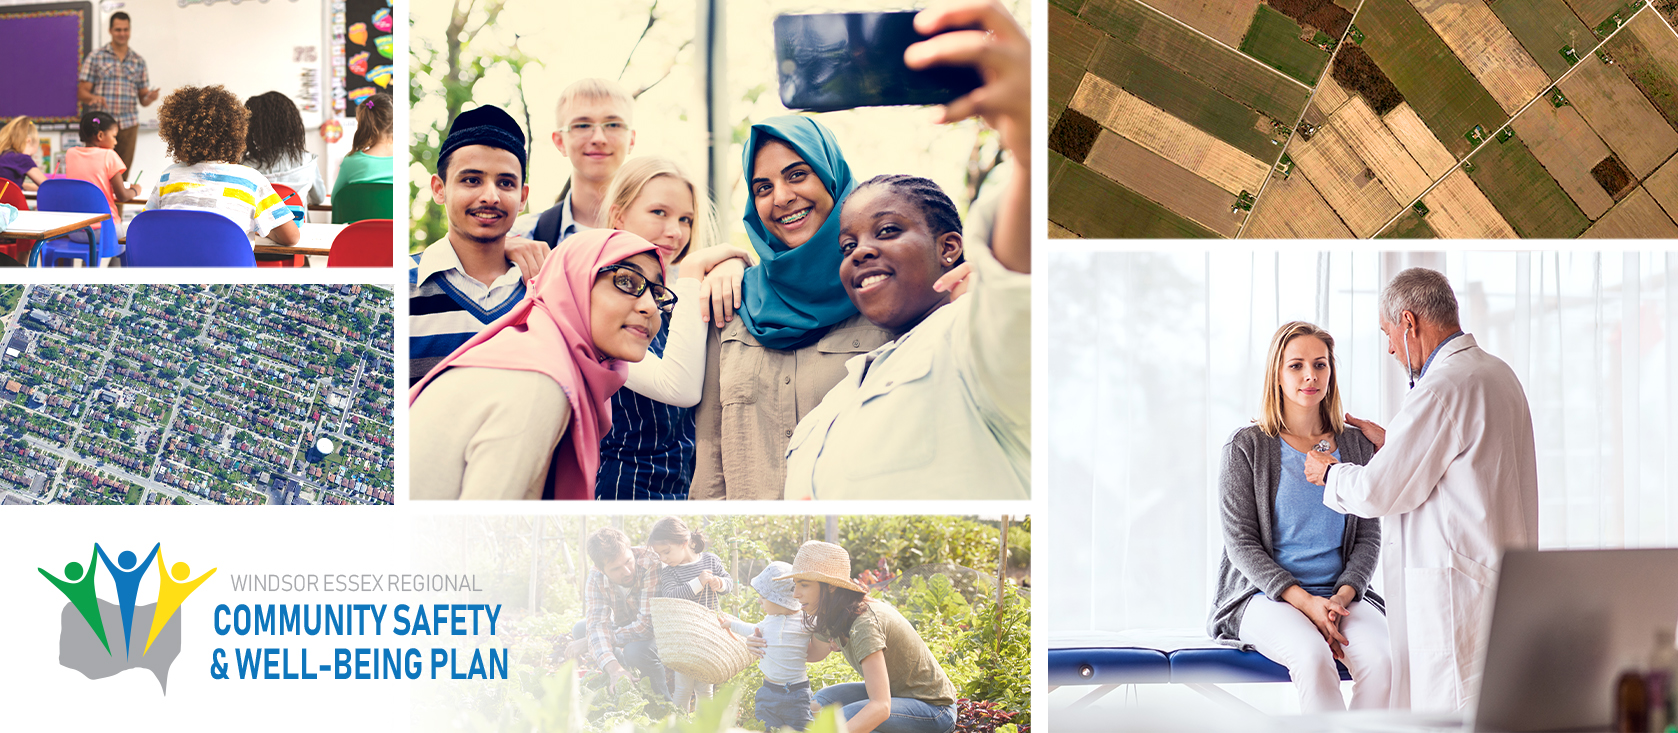 Collage of images for the community safety and well-being plan